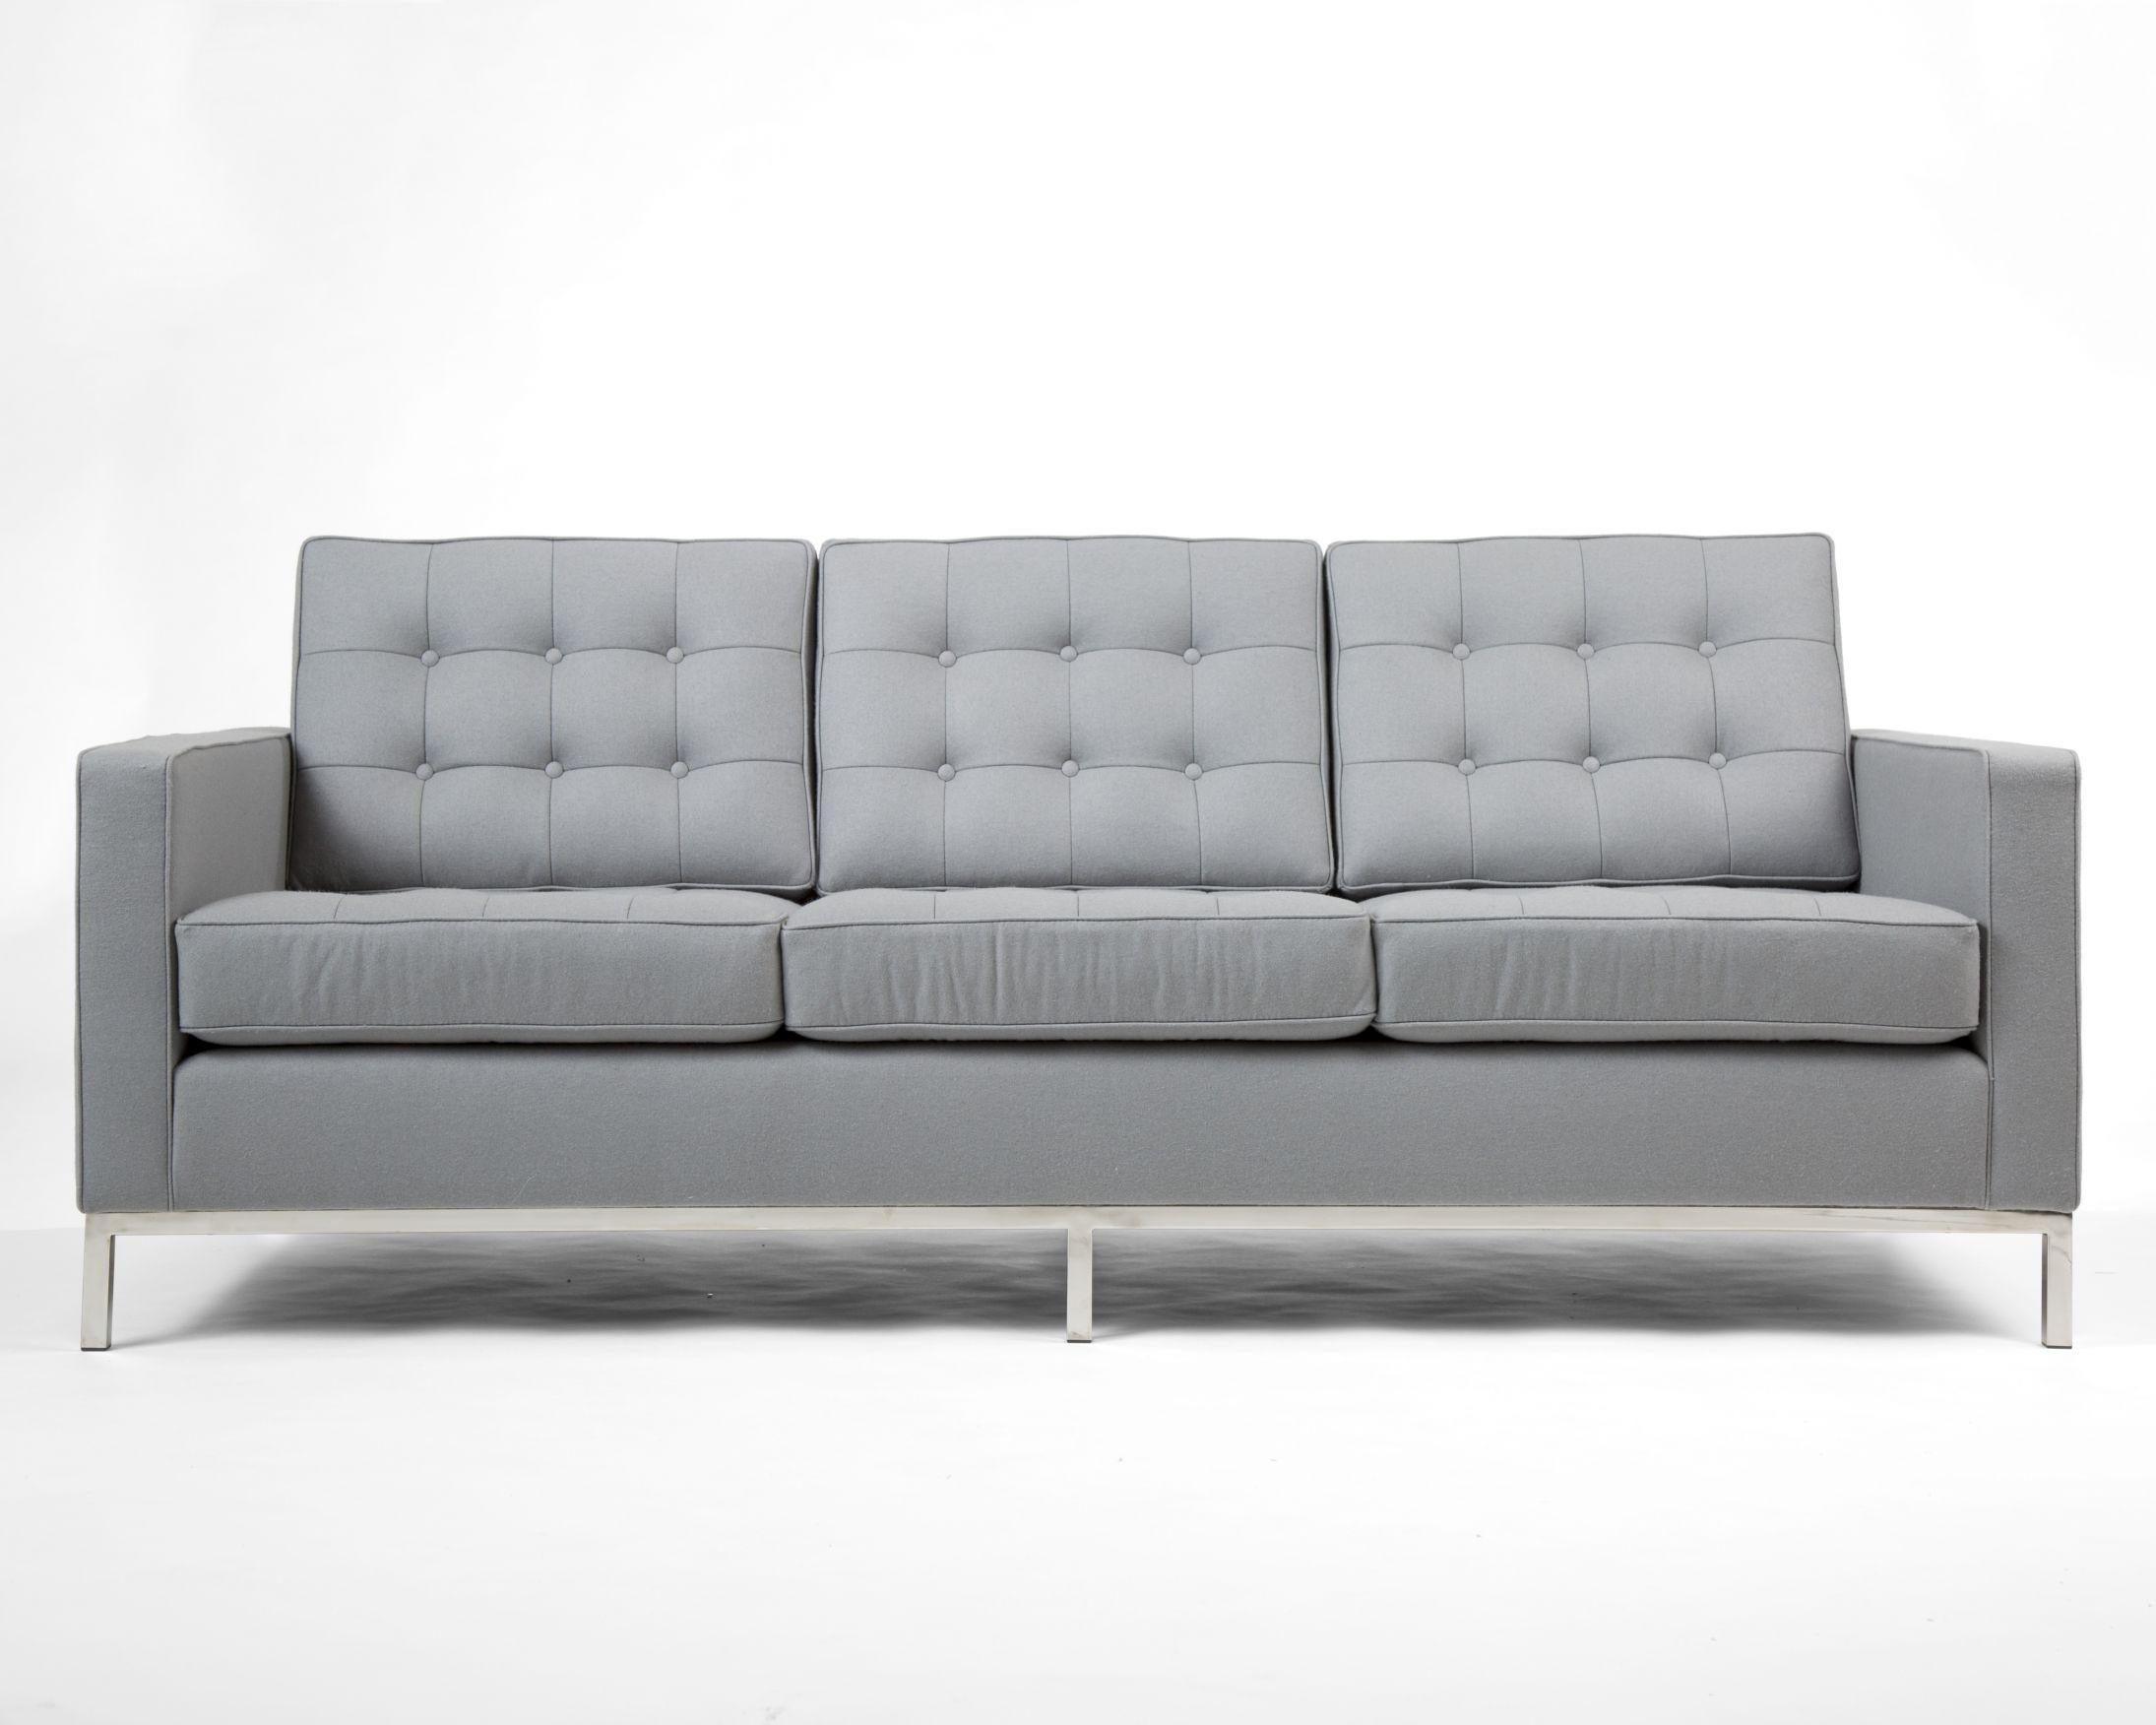 Florence Sofa | Reproduction | Mid Century Modern Intended For Florence Sofa Beds (Image 7 of 20)